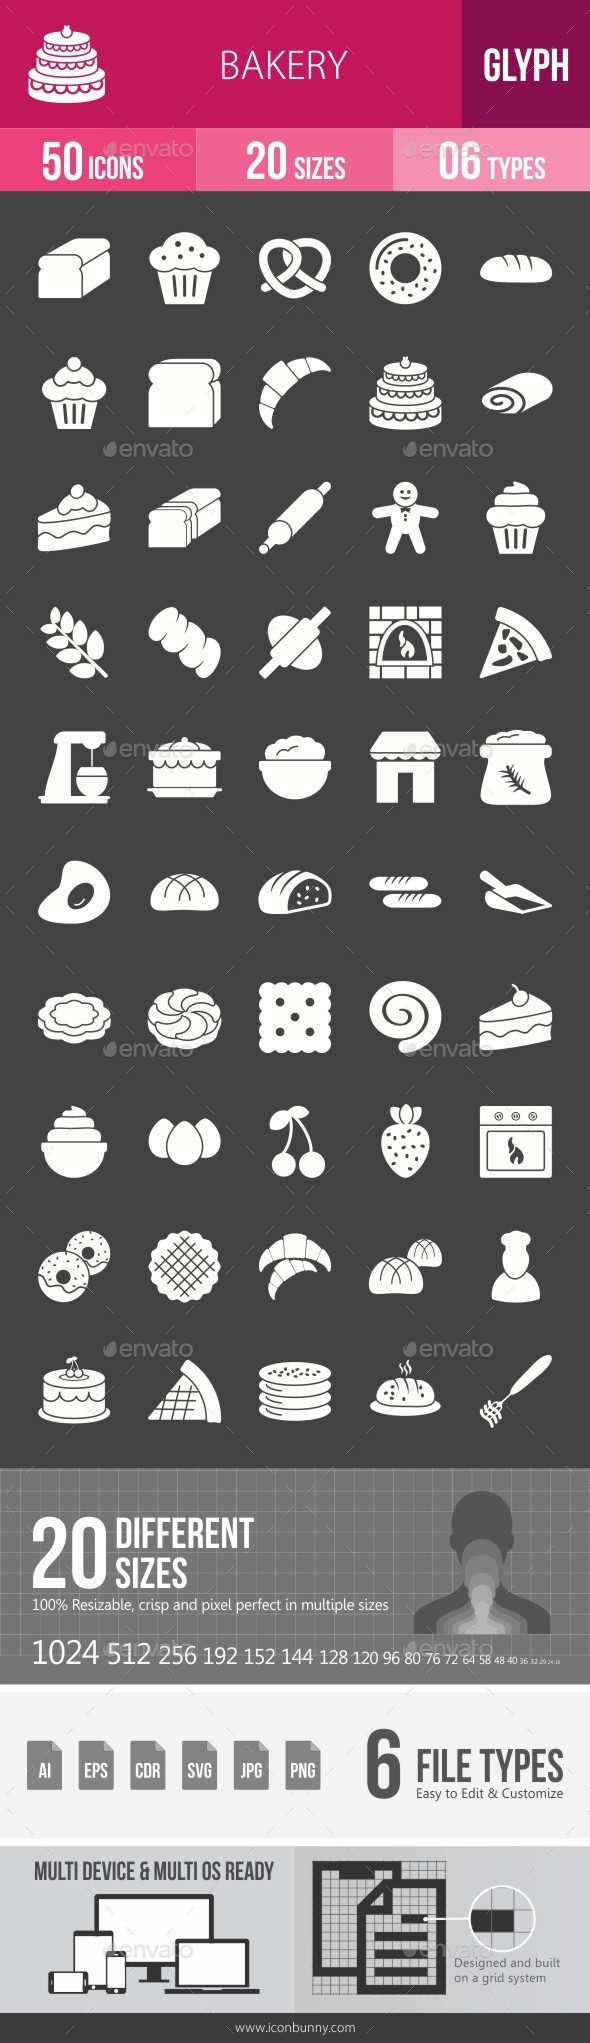 Bakery Glyph Inverted Icons - Icons